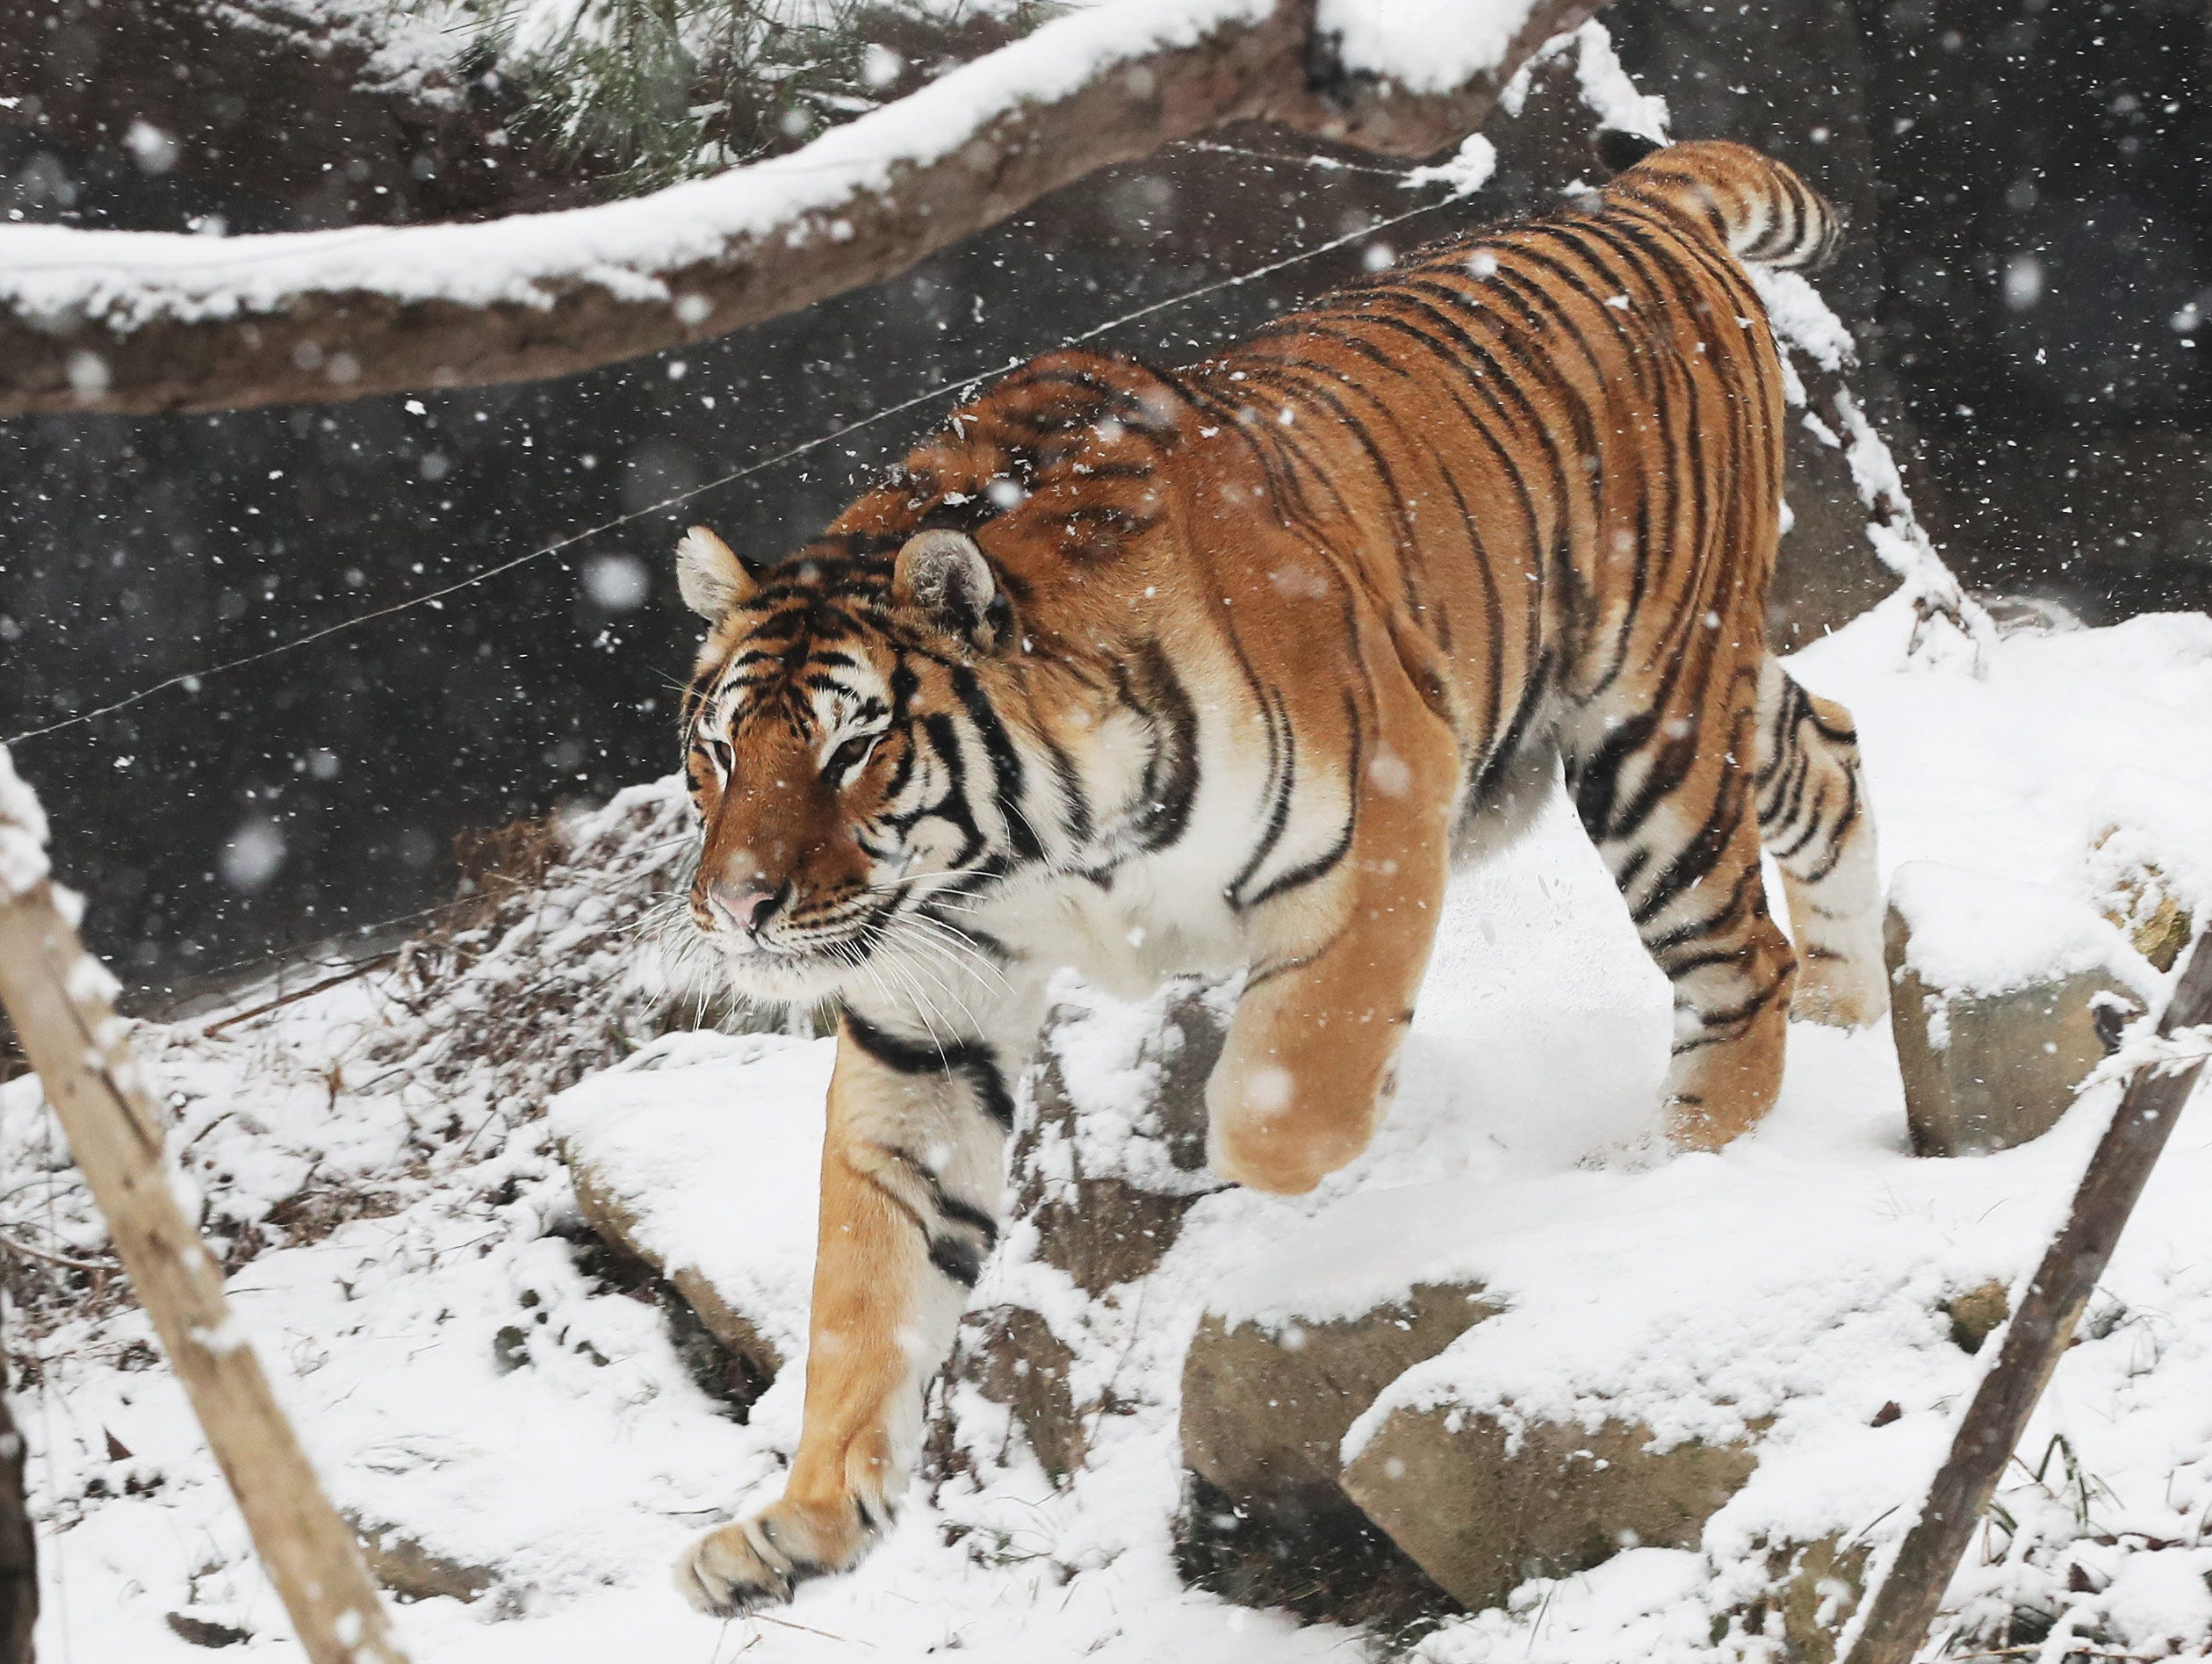 epa07227798 A tiger runs while it snows at the amusement park Everland in Yongin, south of Seoul, South Korea, 13 December 2018.  EPA-EFE/YONHAP SOUTH KOREA OUT